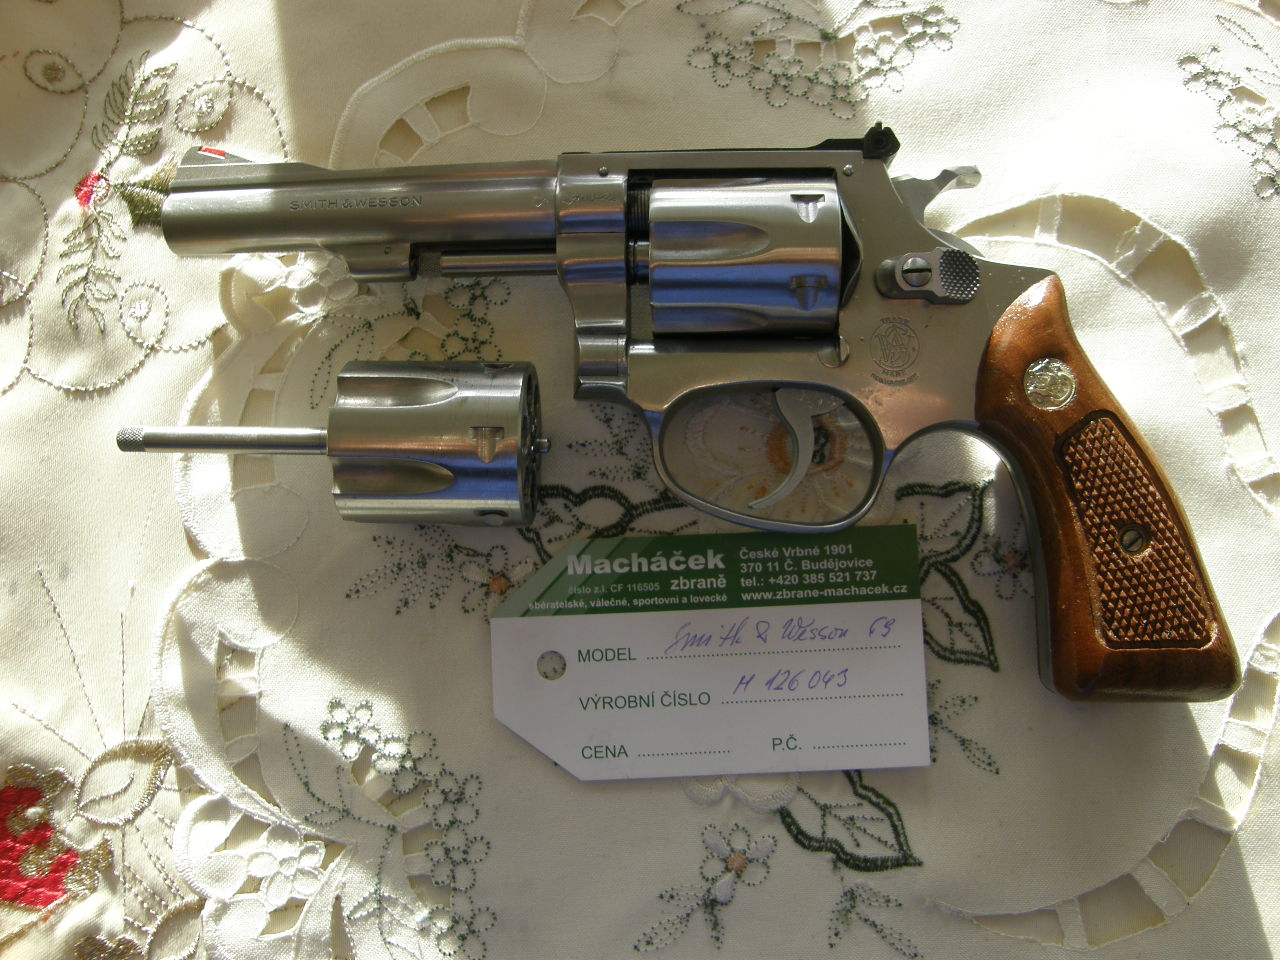 Revolver Smith Wesson Mod 63 v.č. M 126043 r. 22 LR